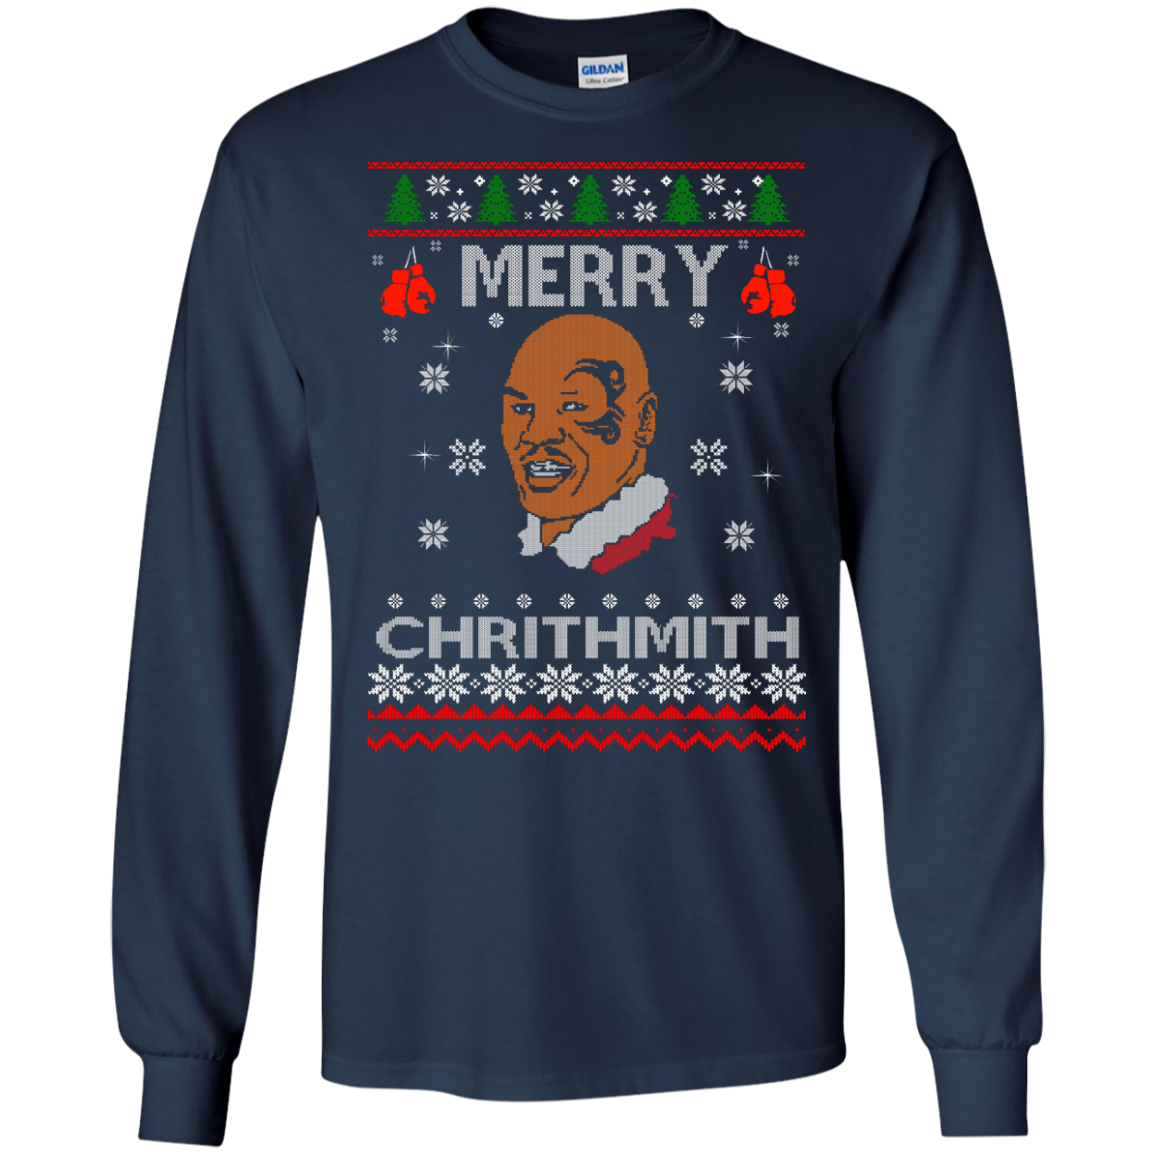 image 560px Merry Chrithmith Mike Tyson Ugly Christmas Sweater, T shirt